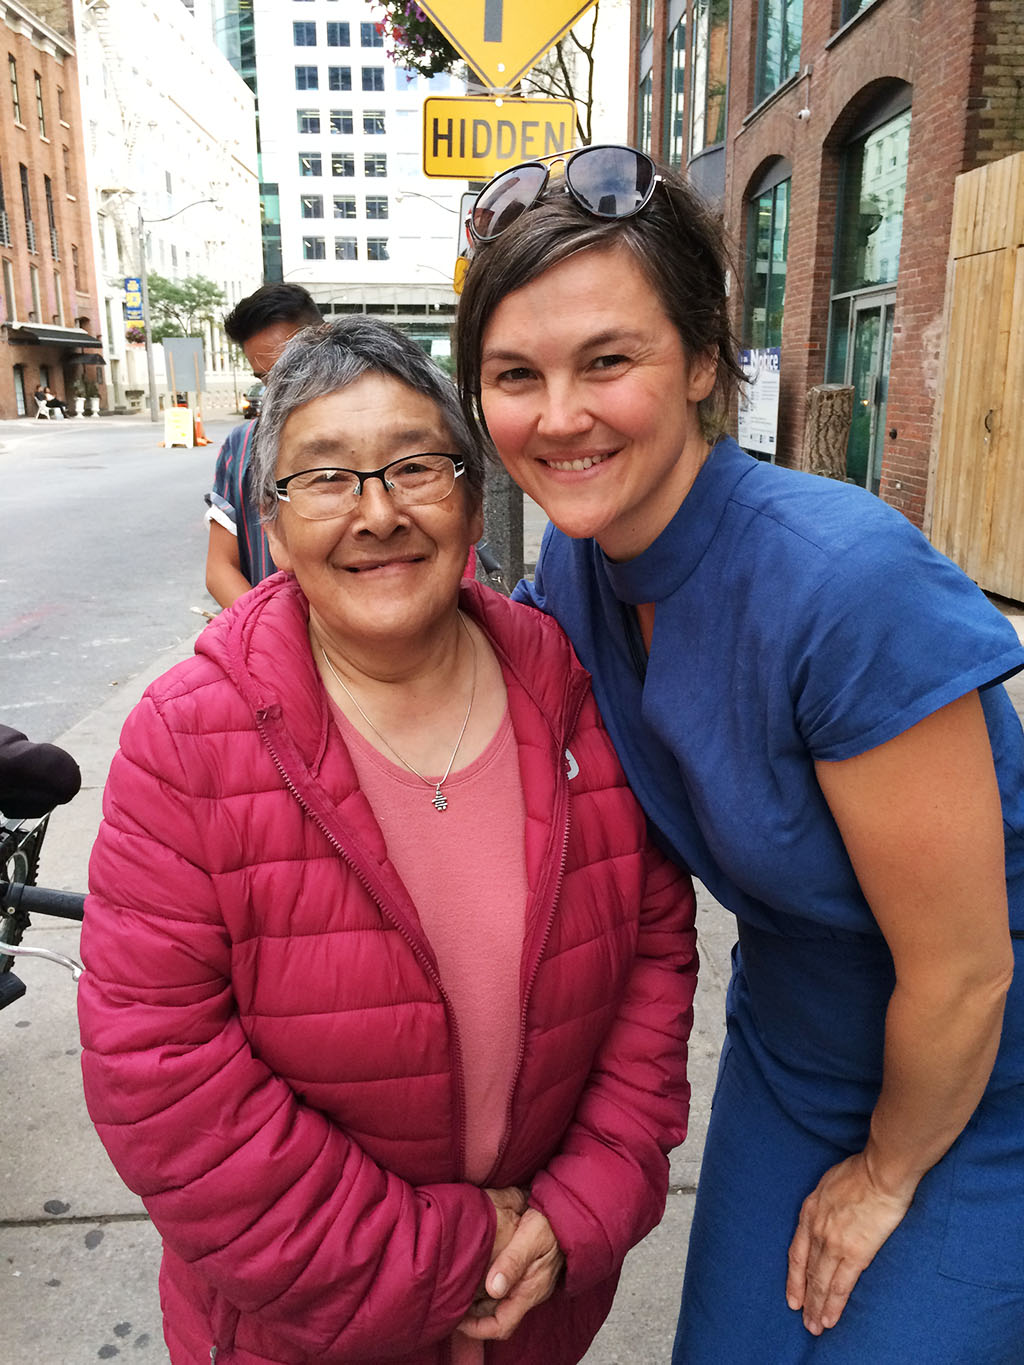 Inuit Elder midwife Leah Qinuajuak with Métis midwife Nathalie Pambrun in Toronto for Core Competencies Workshop, July 2018